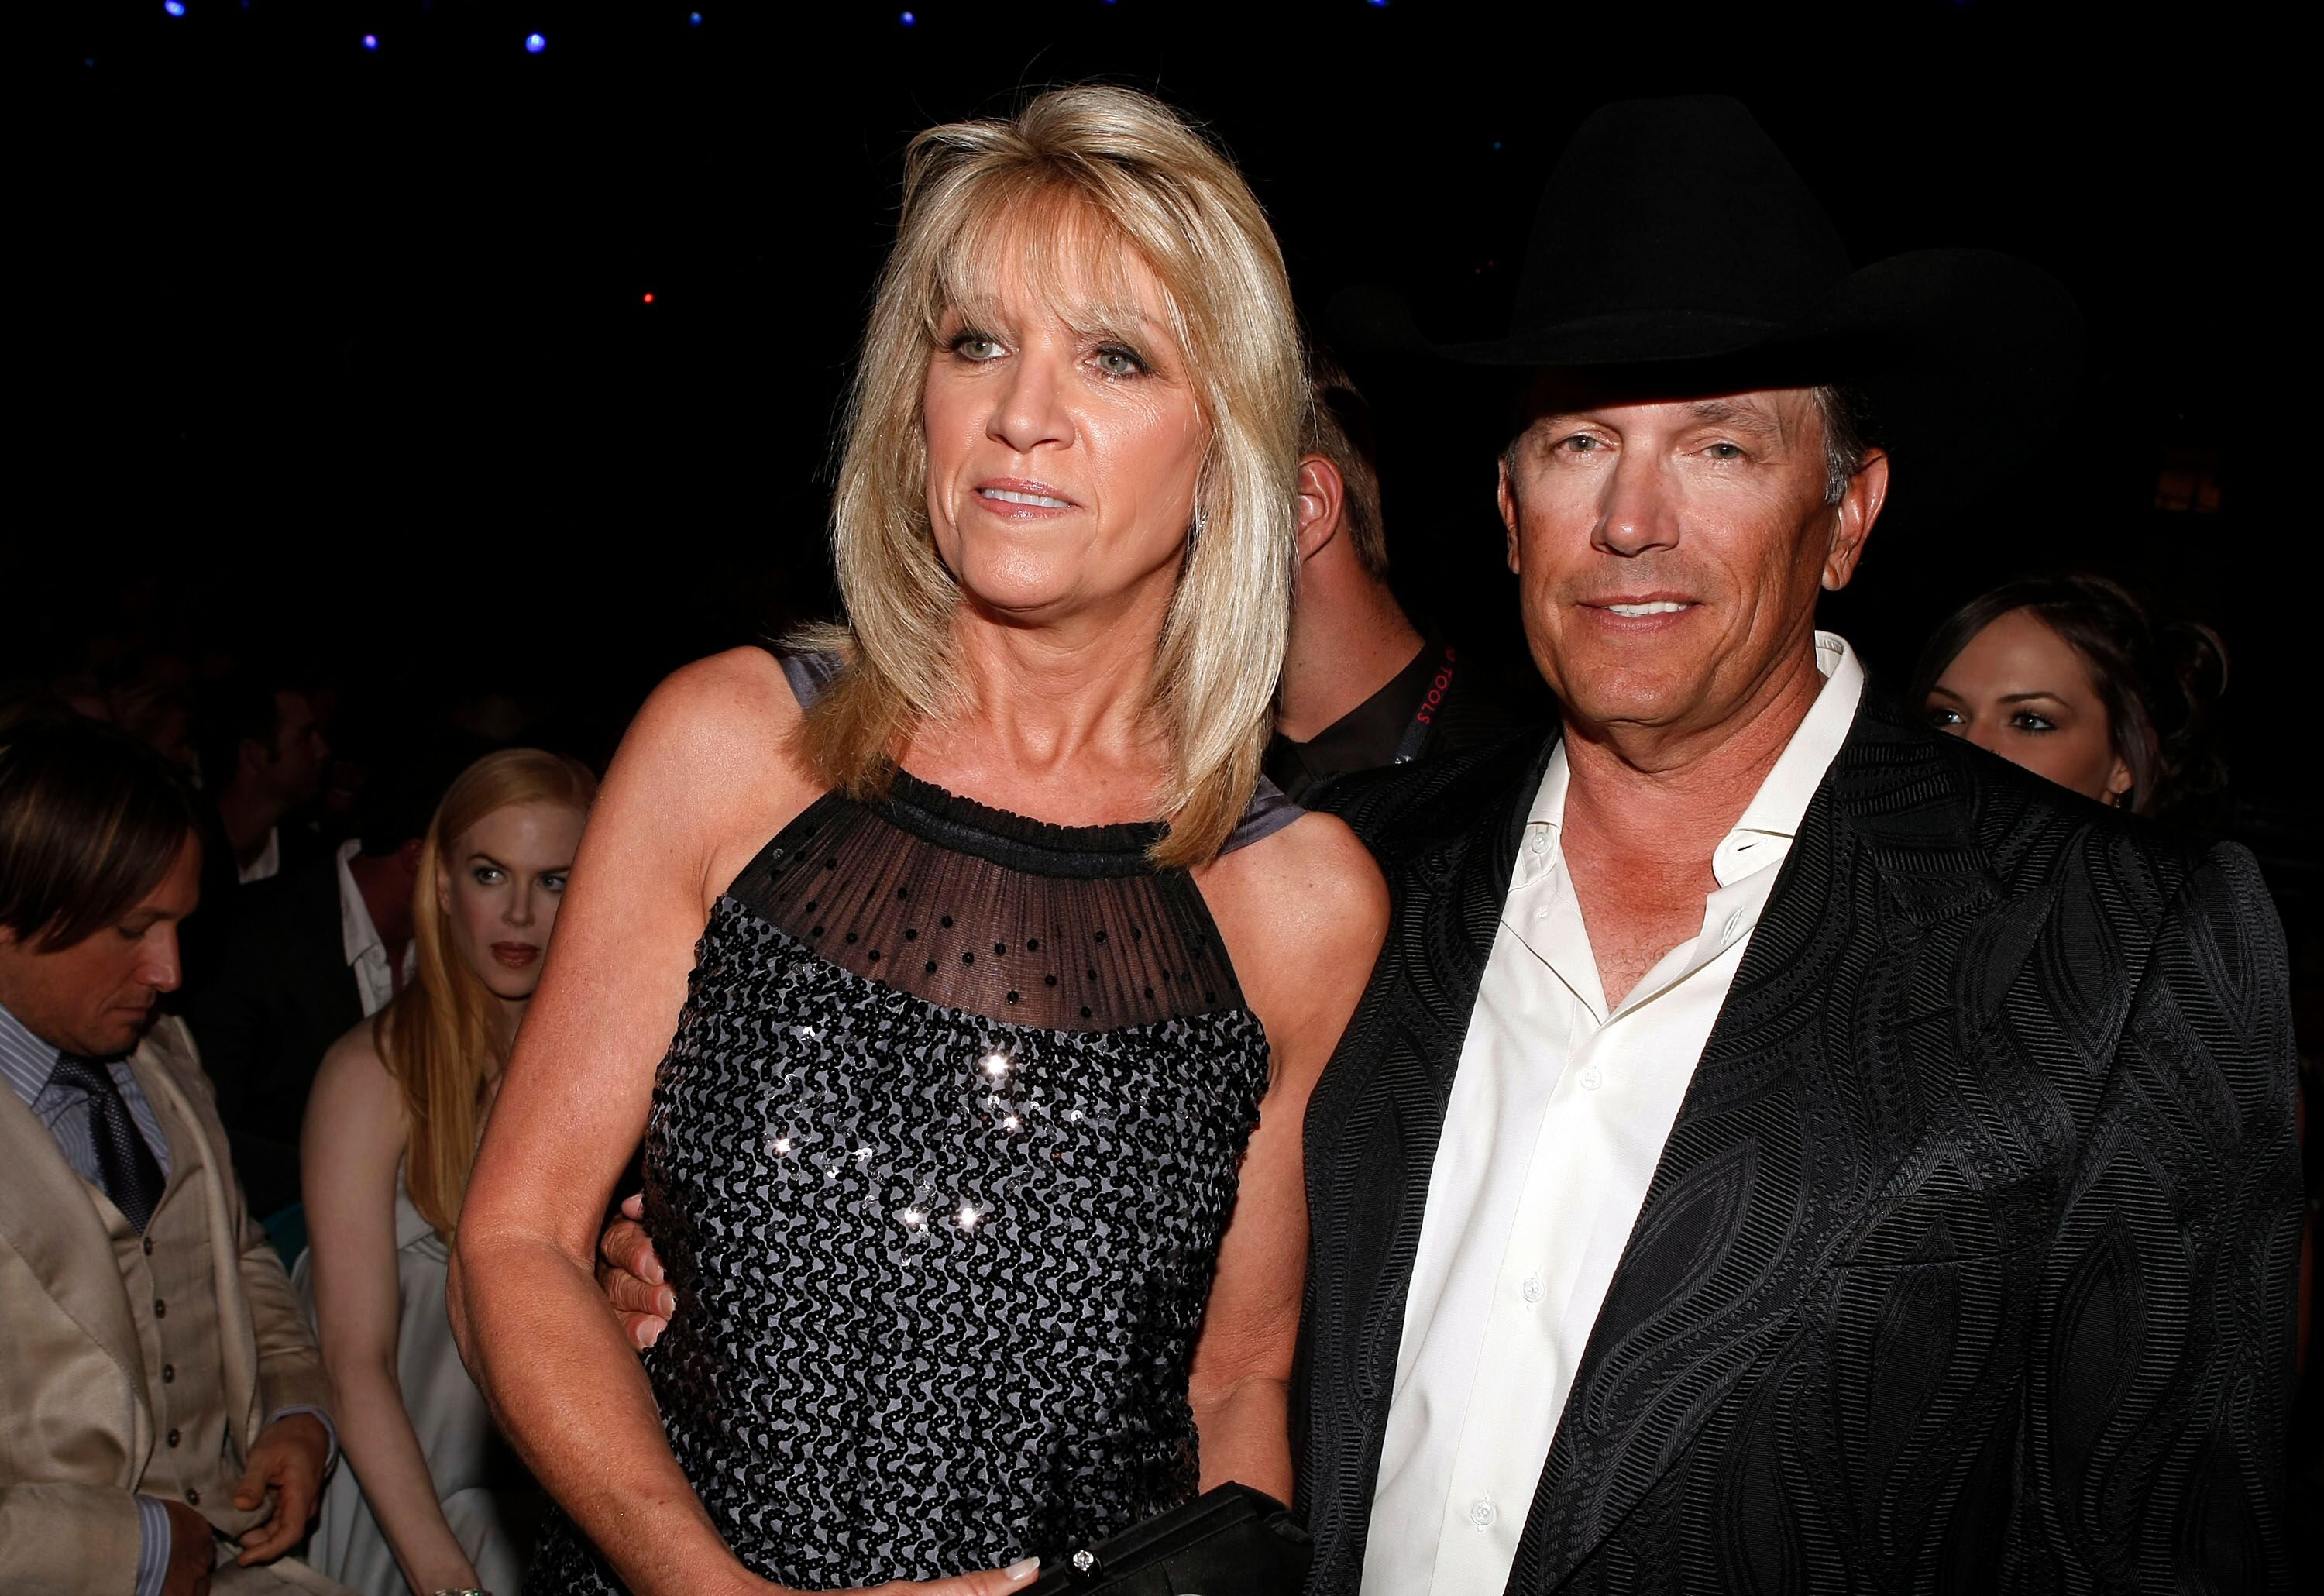 George Strait and Norma Strait attend the 43rd Academy of Country Music Awards. | Source: Getty Images